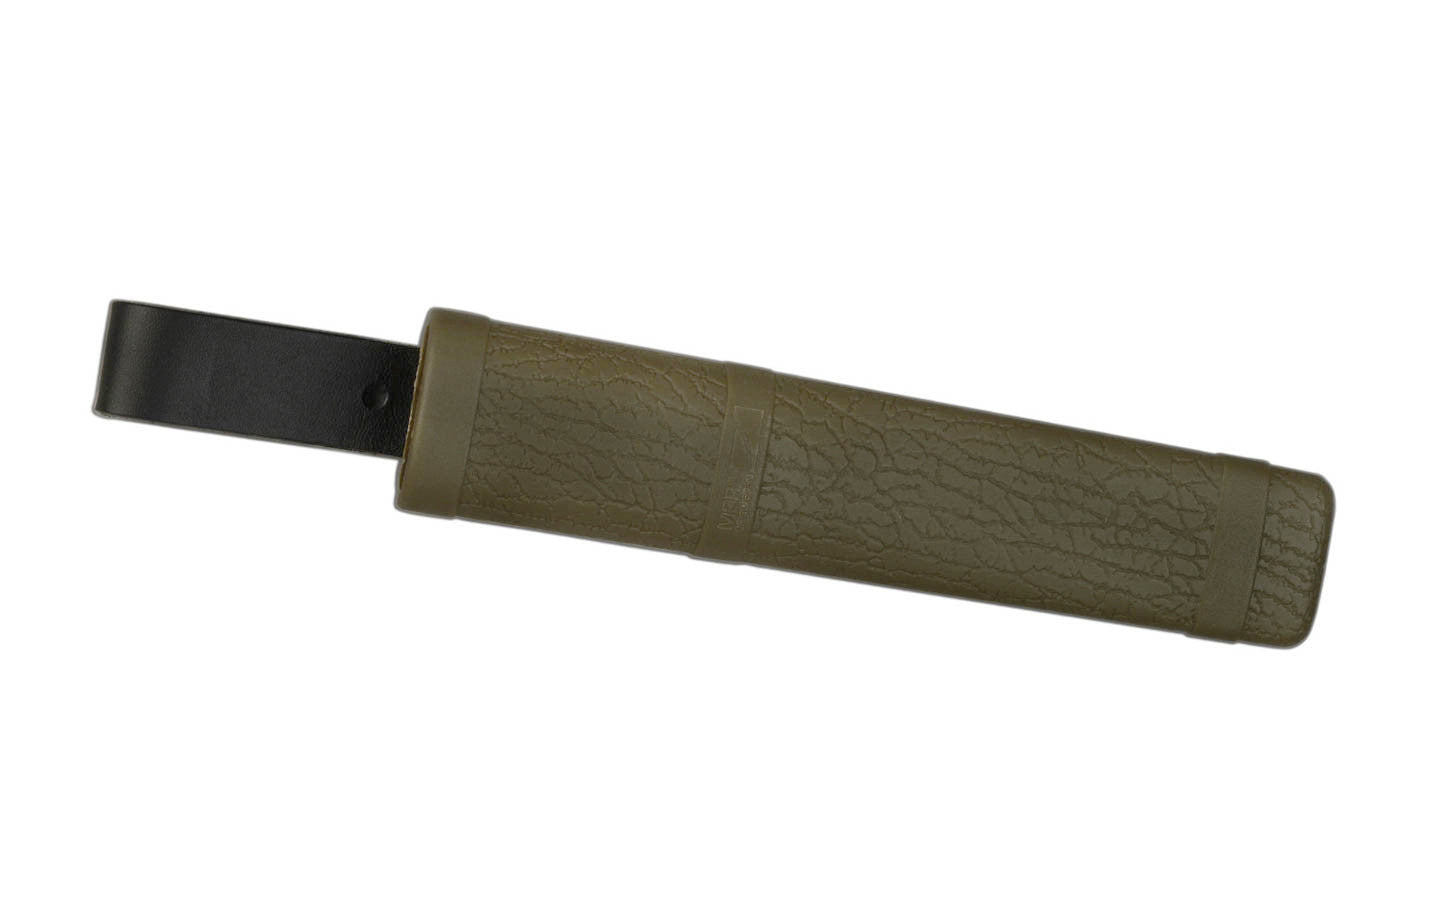 Sheath for Mora of Sweden Stainless